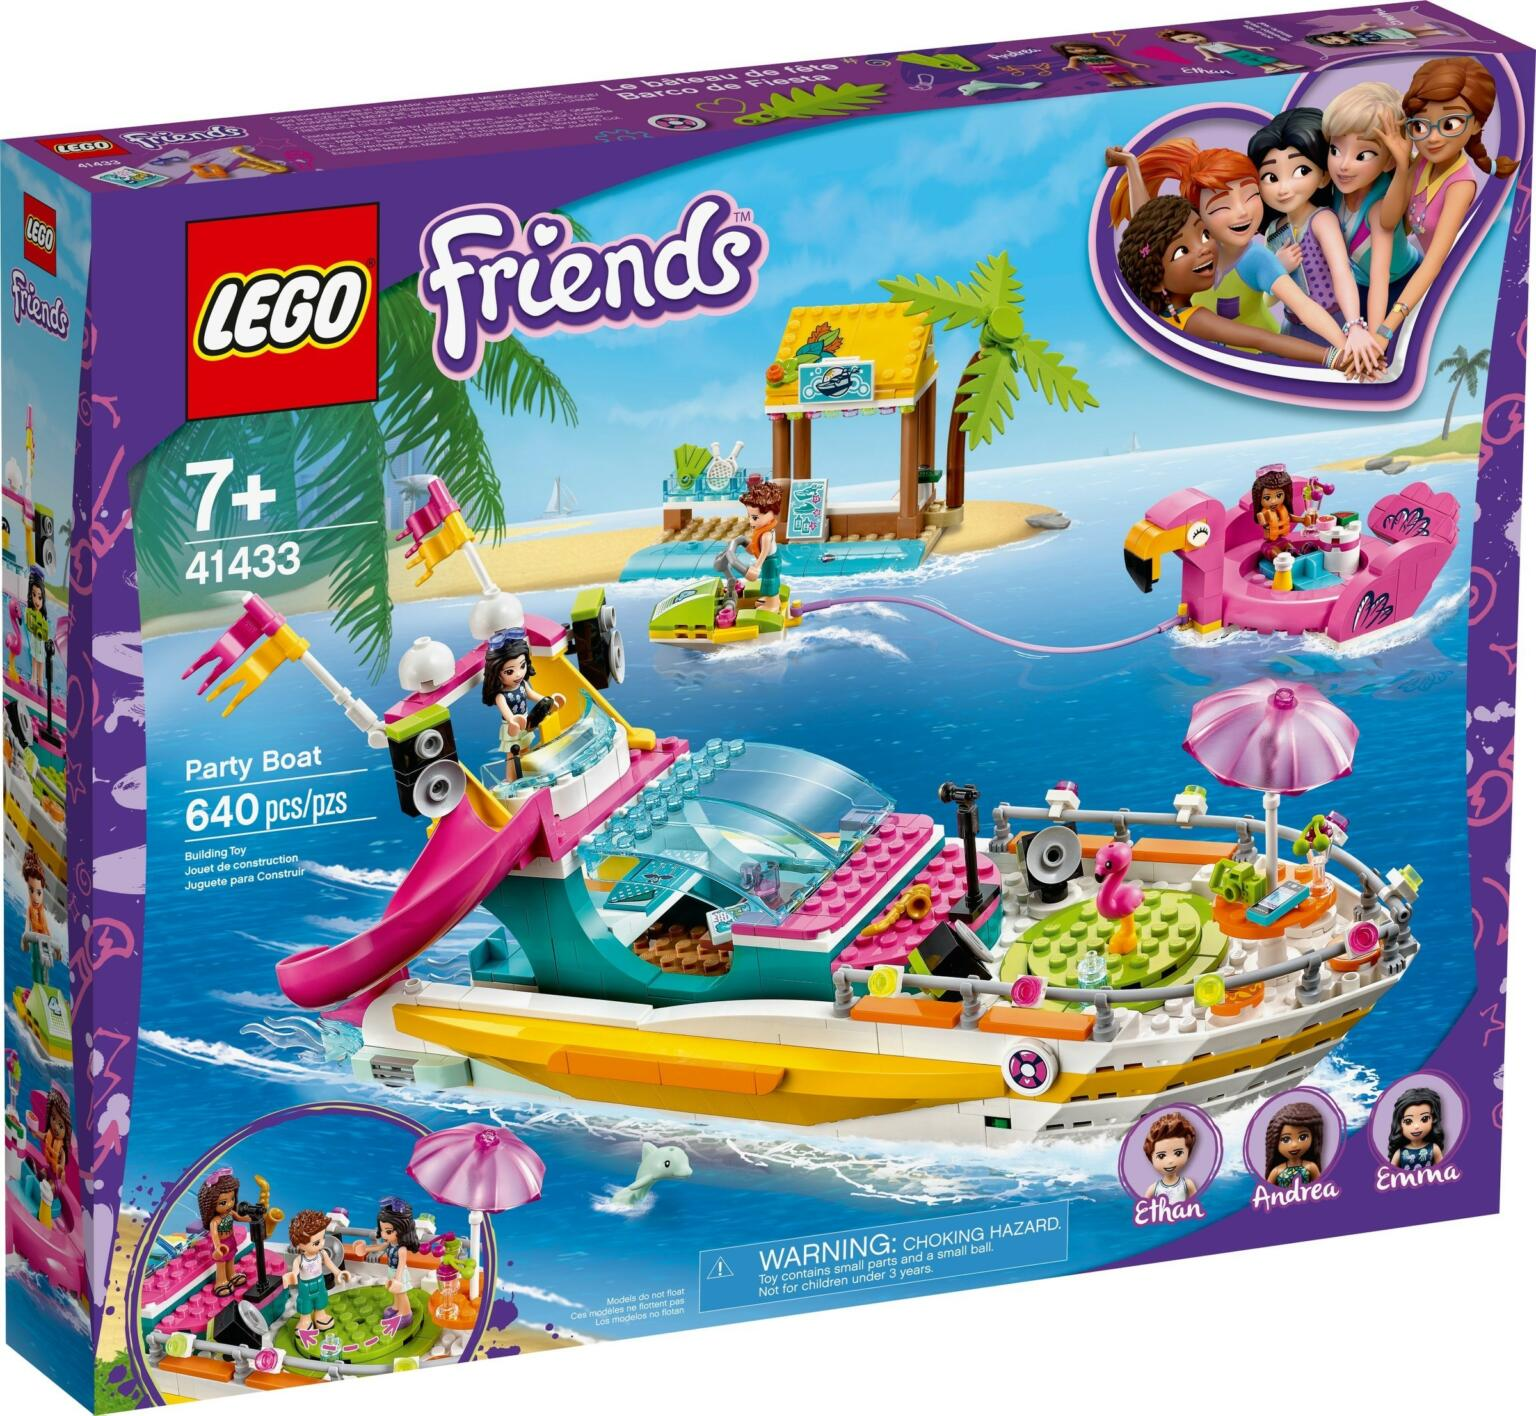 41433: LEGO® Friends Party Boat / Partyboot von Heartlake ...